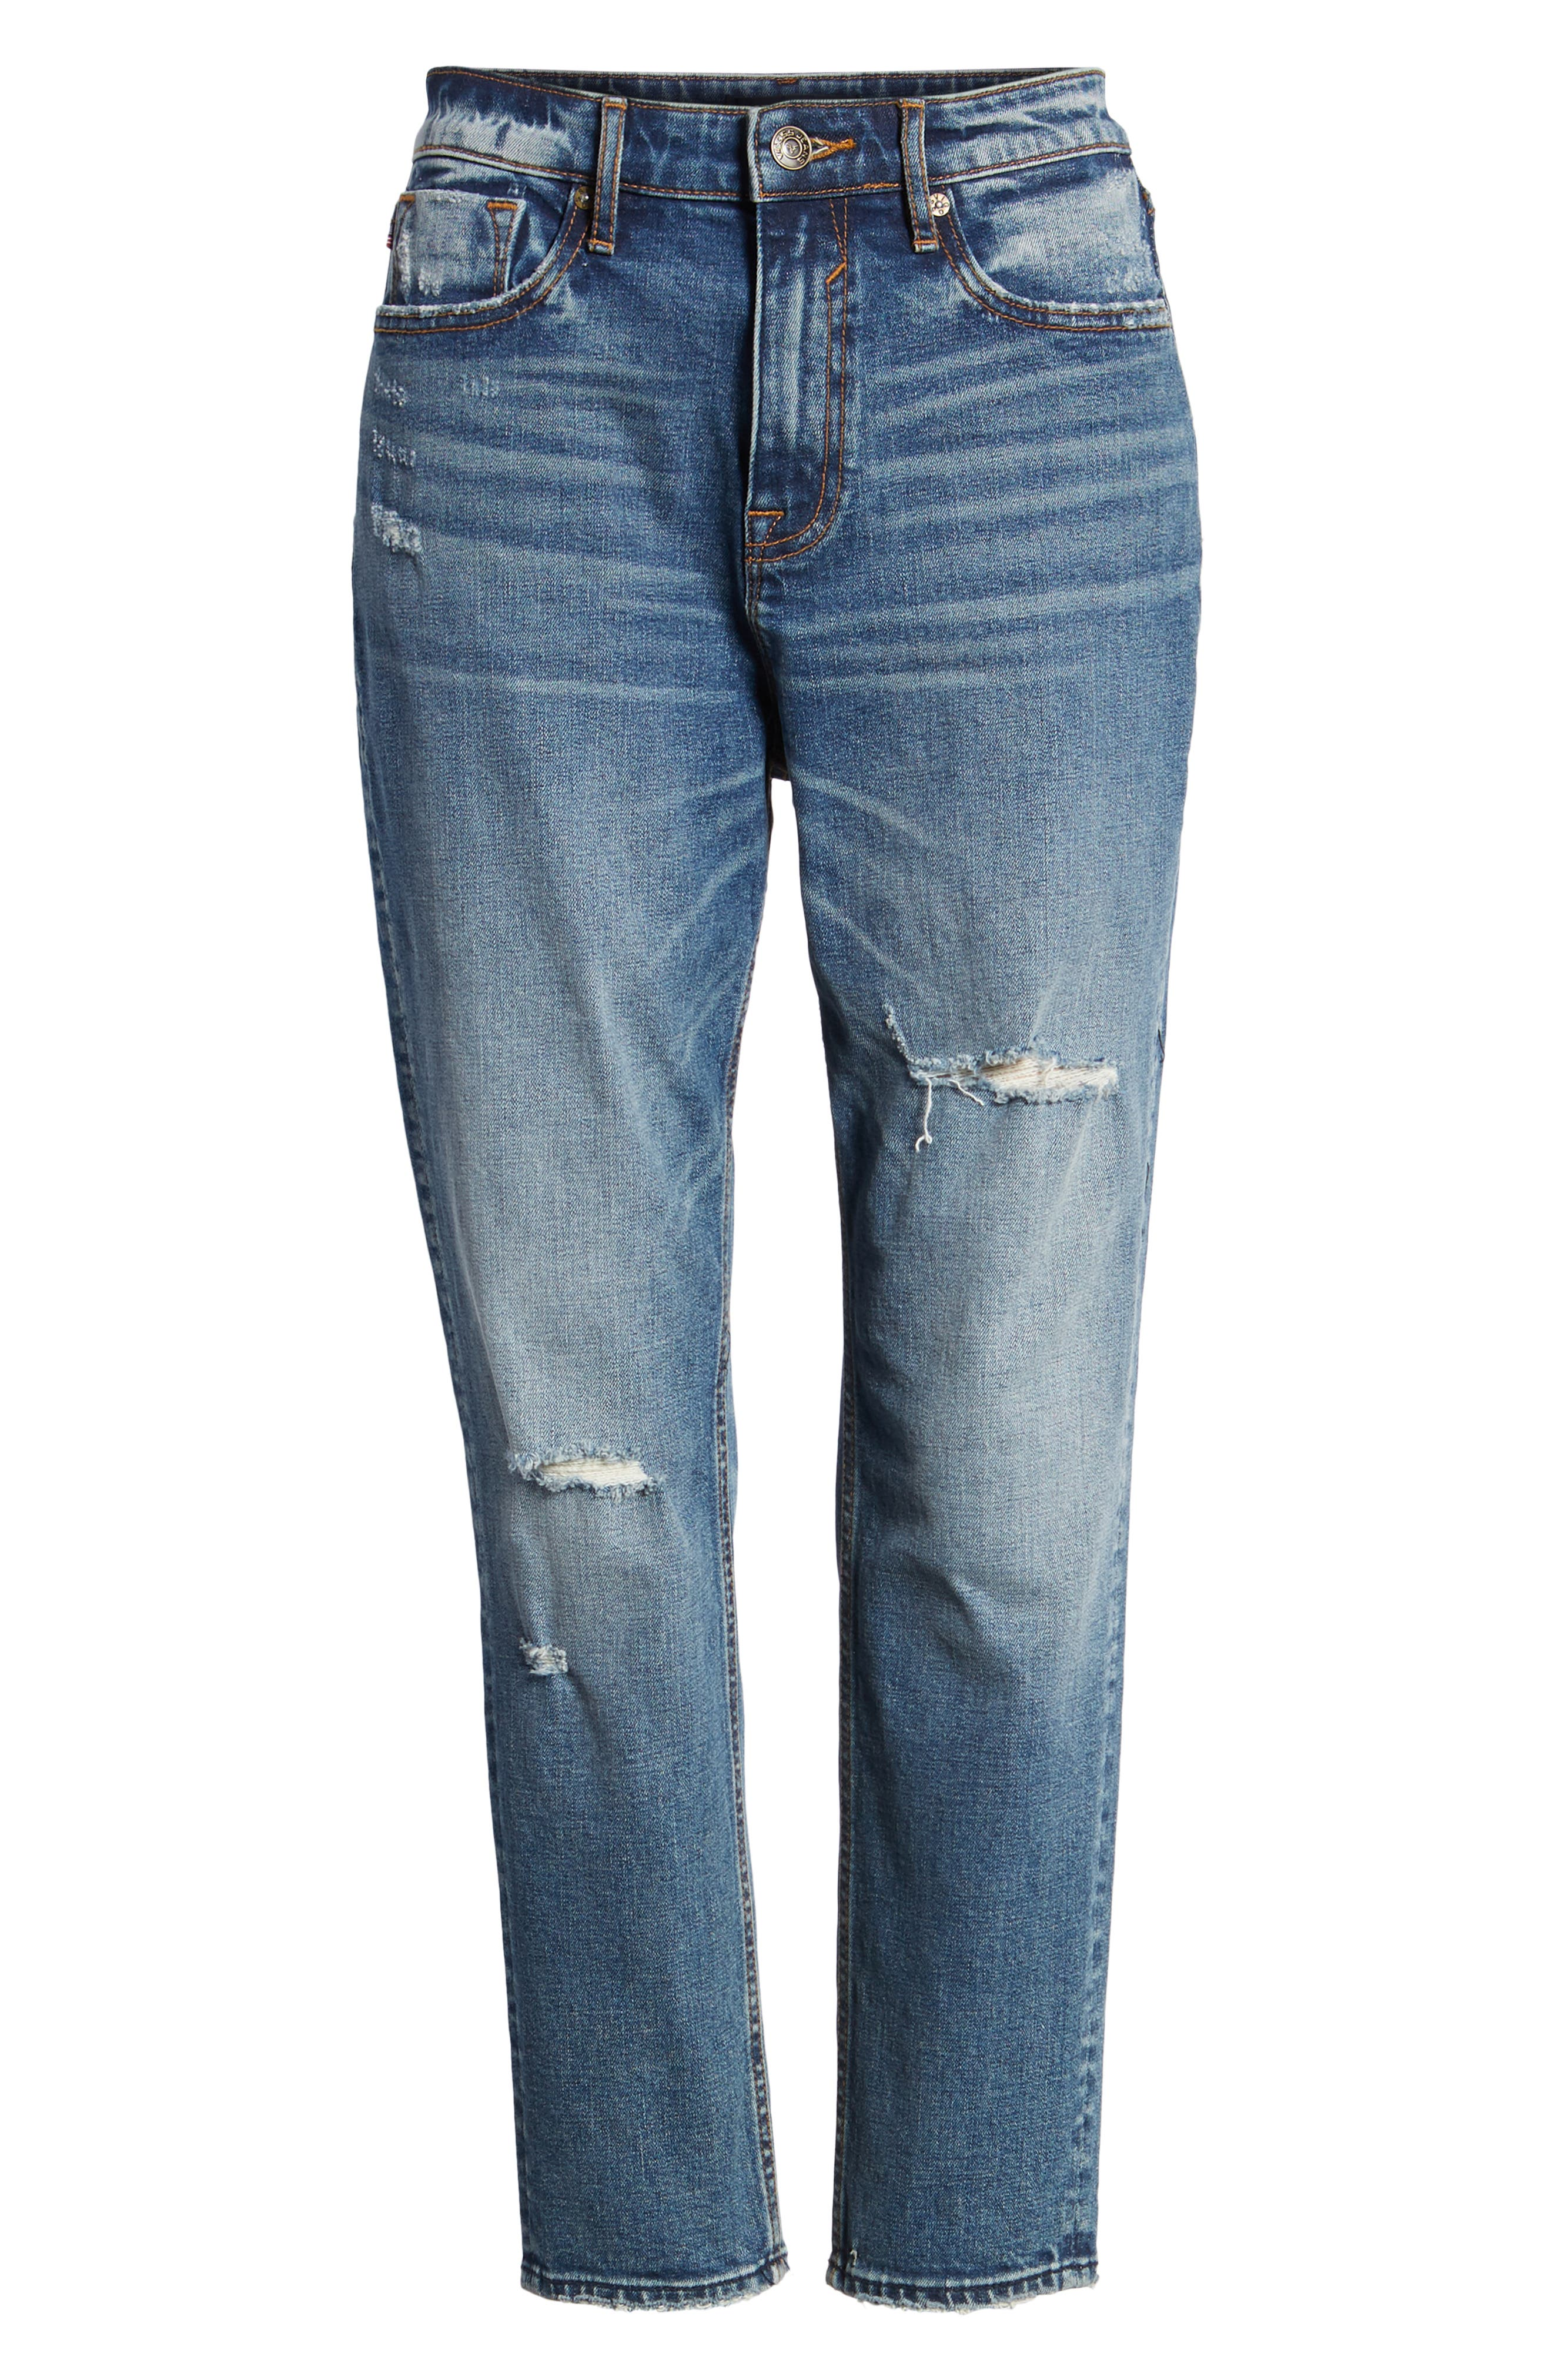 Friday Distressed Tapered Boyfriend Jeans,                             Alternate thumbnail 7, color,                             426